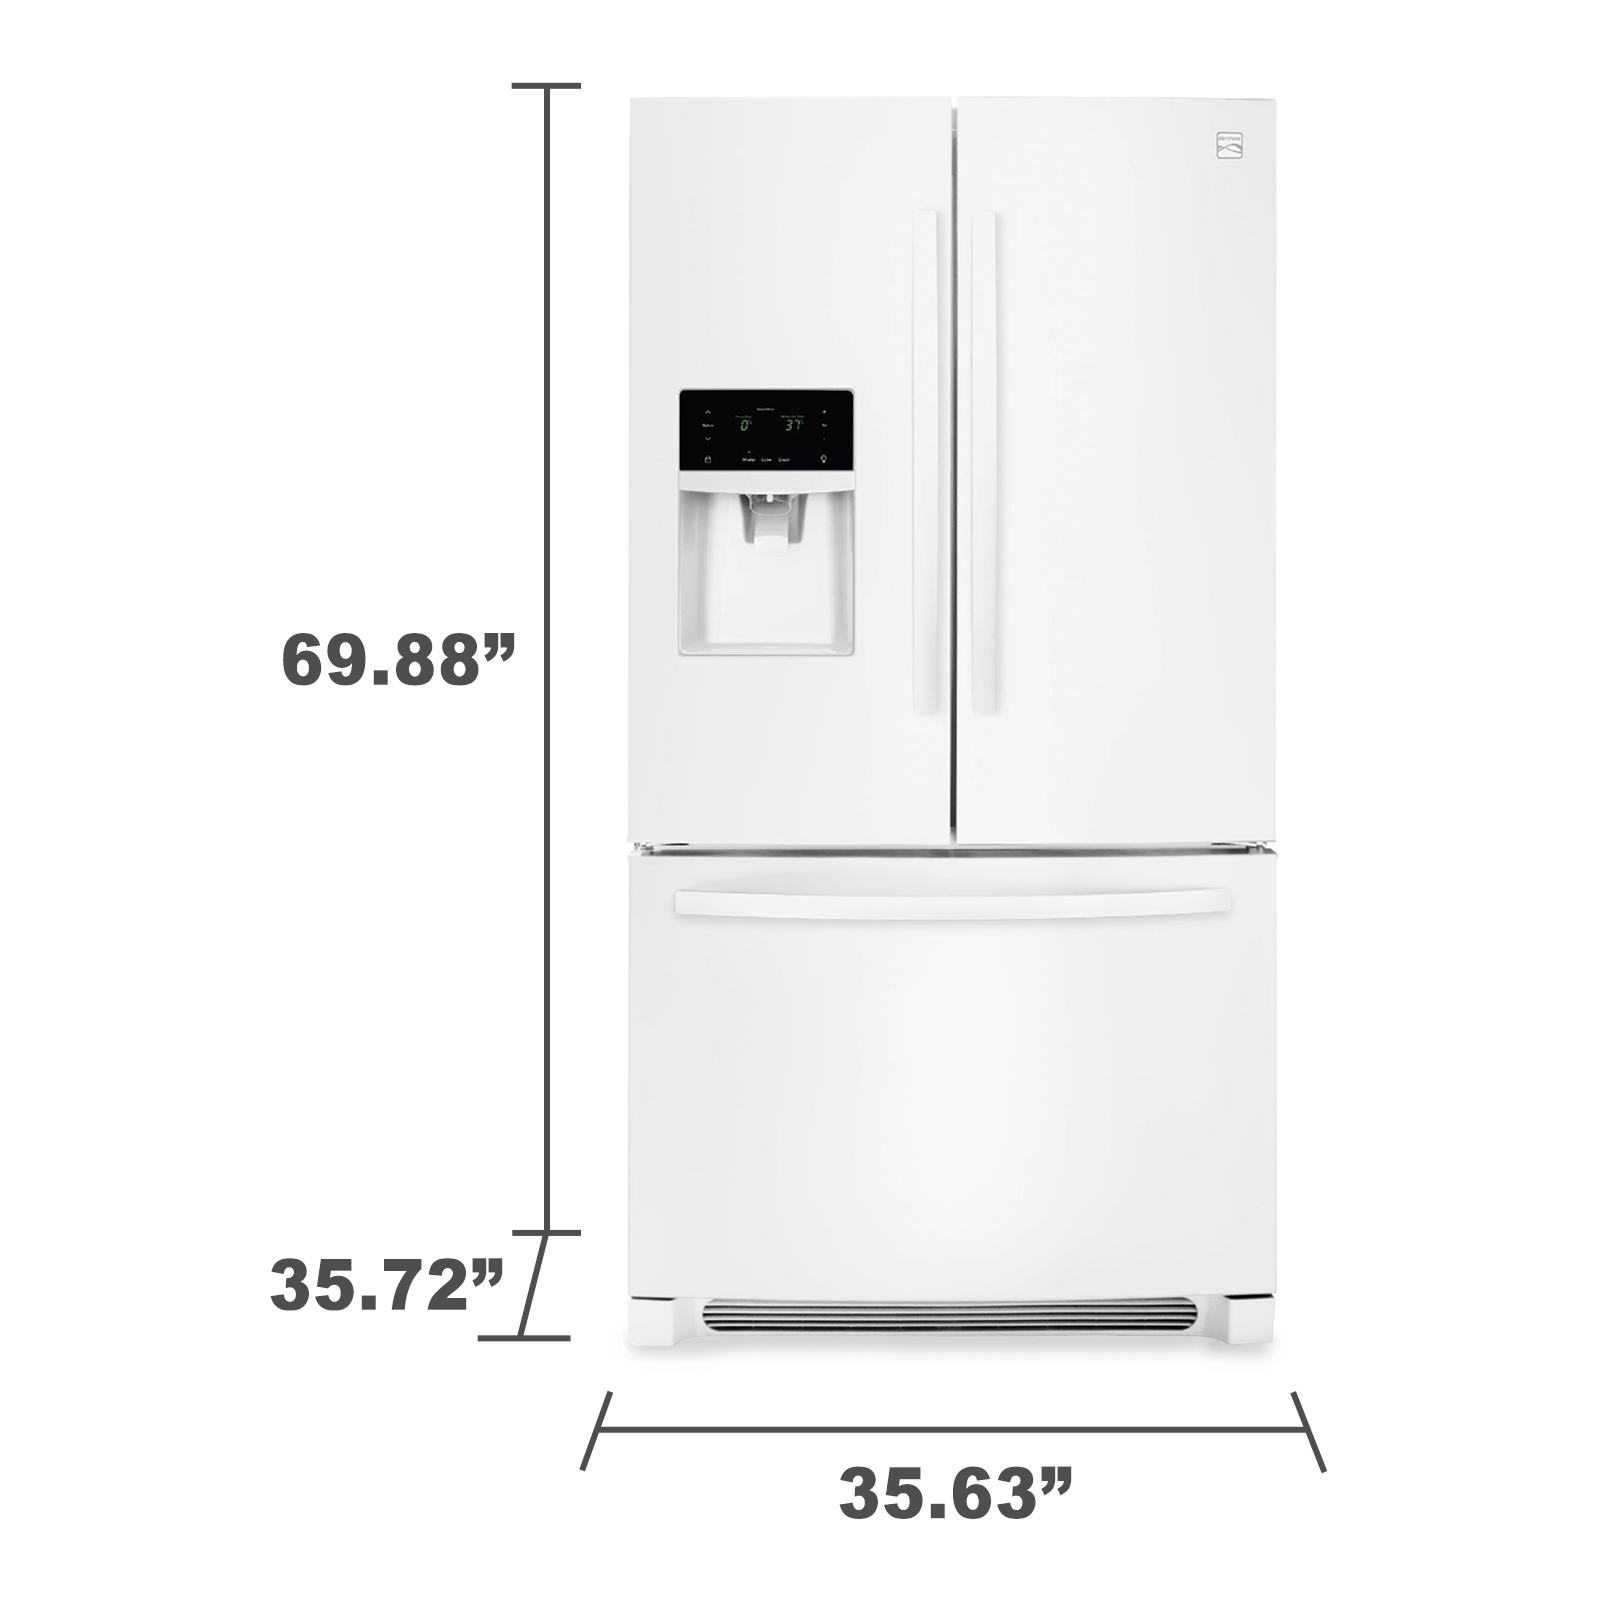 Kenmore 70342 27.2 cu. ft. French Door Refrigerator - White